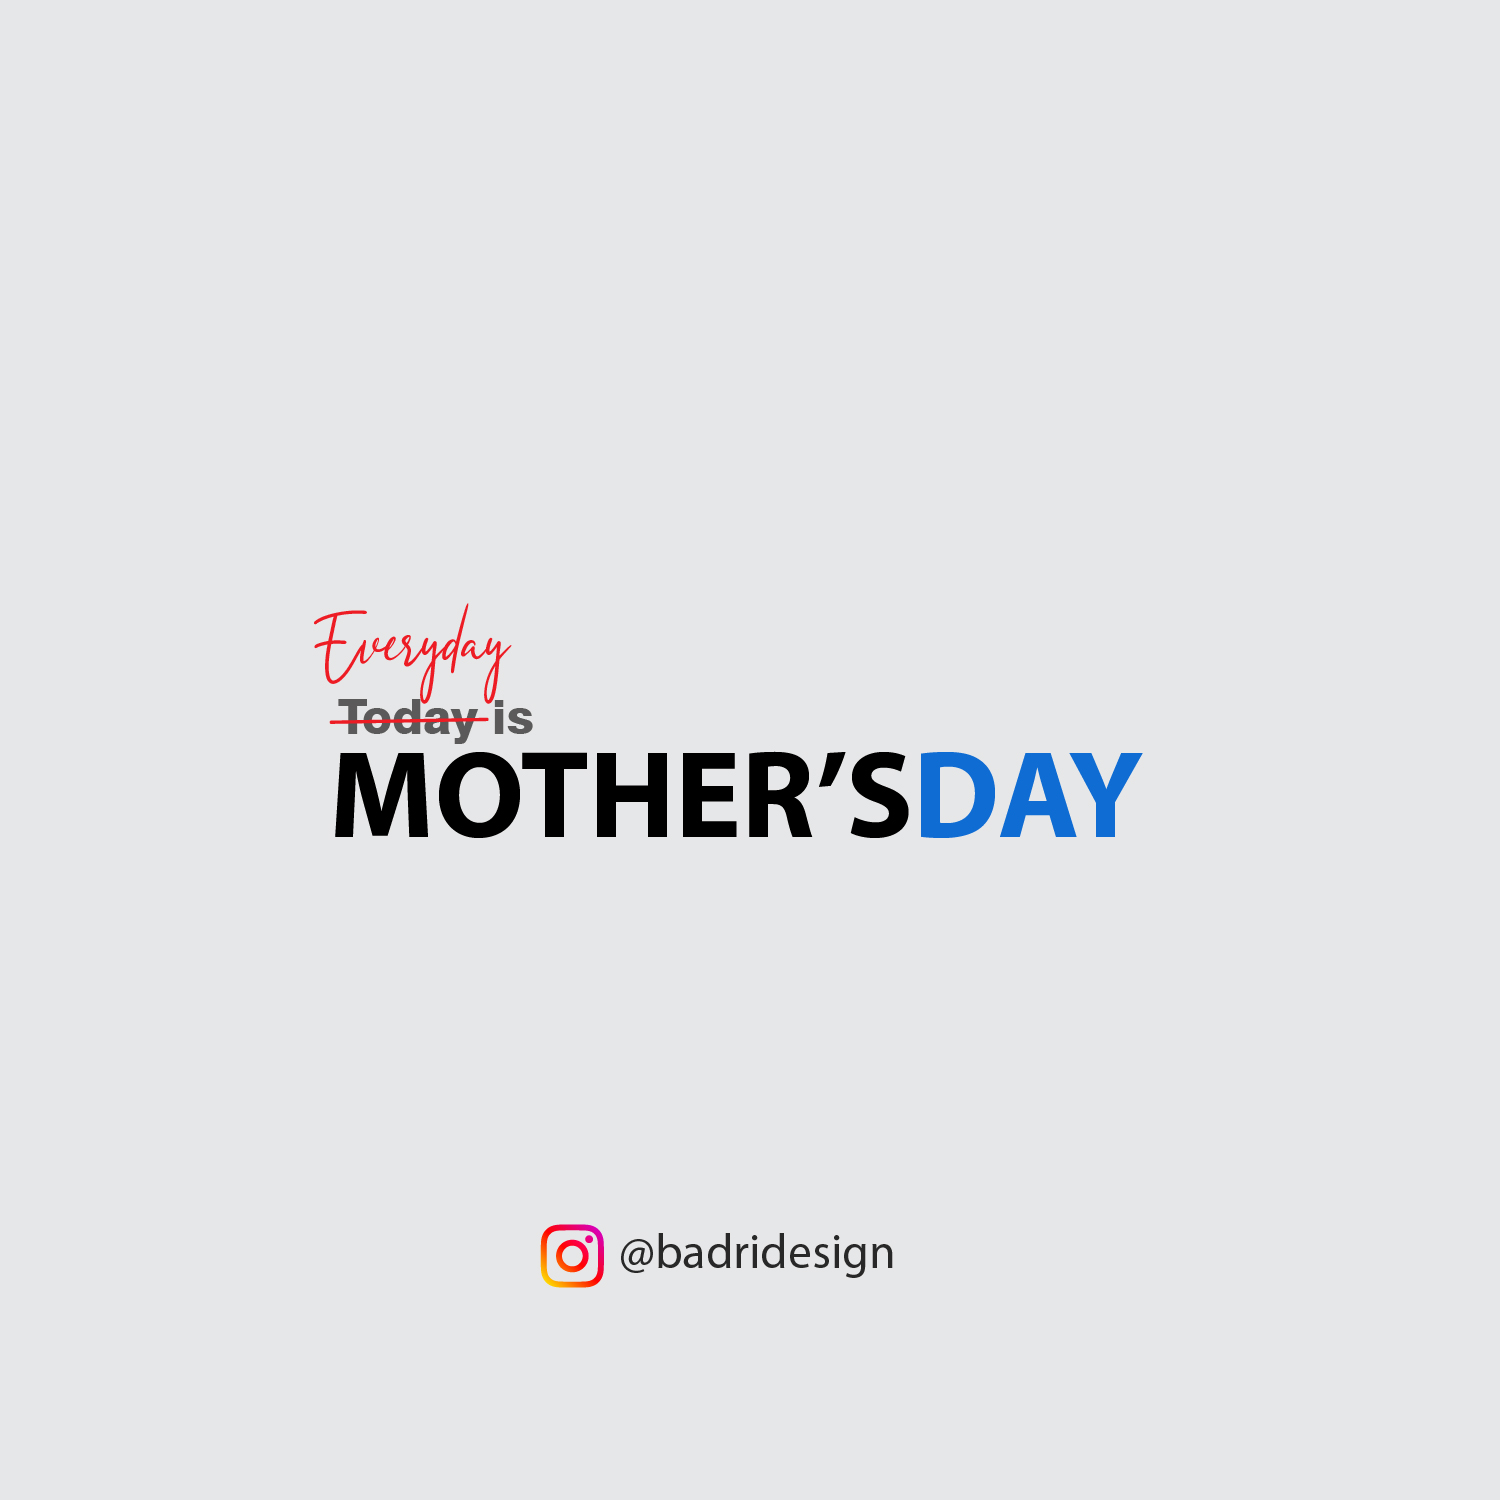 Mother's day topical content creation by Badri Design